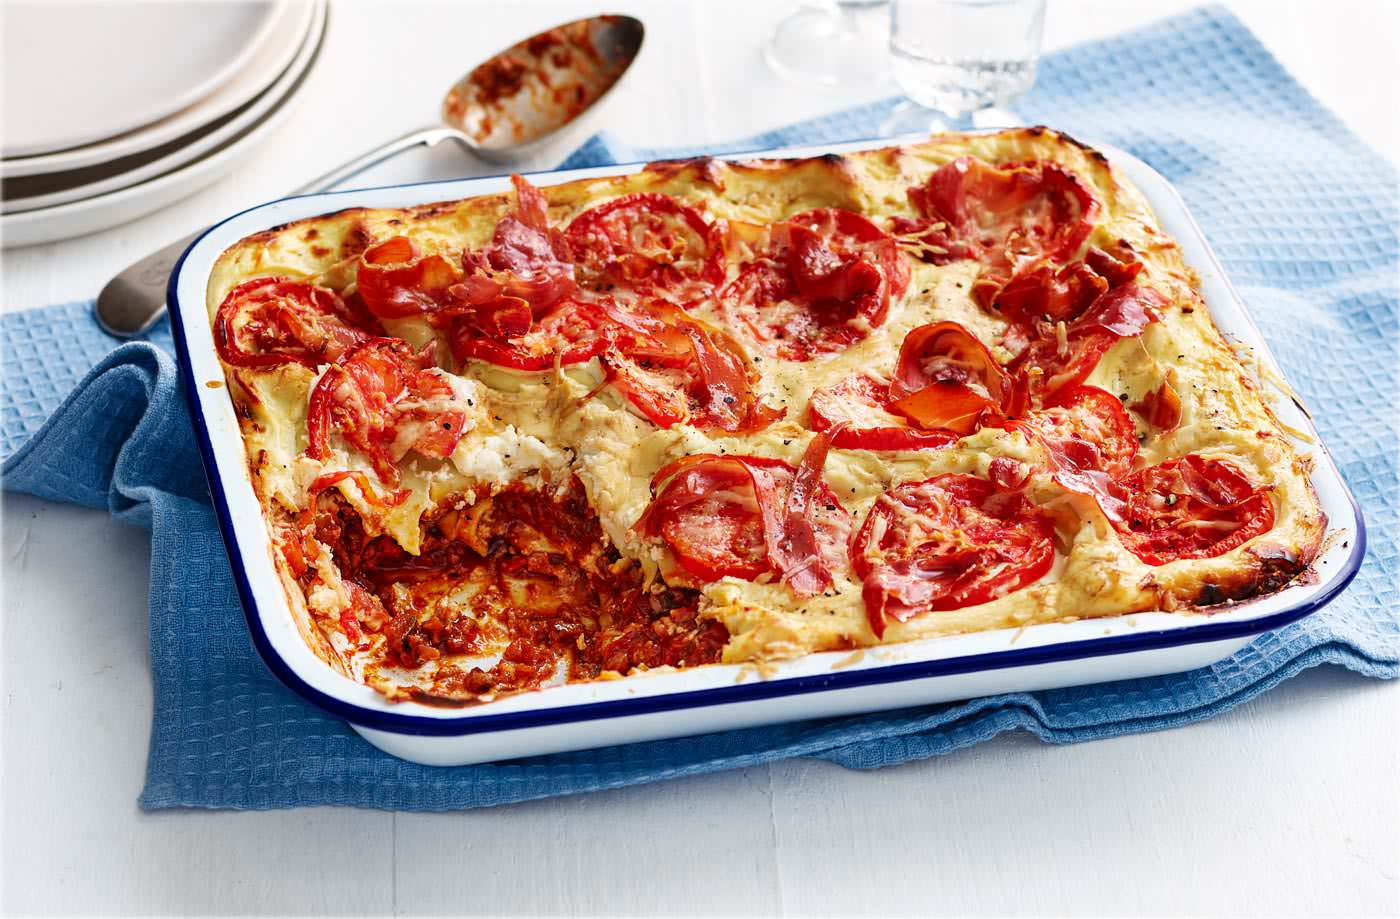 Dan and Liam's 'made for you' lasagne recipe